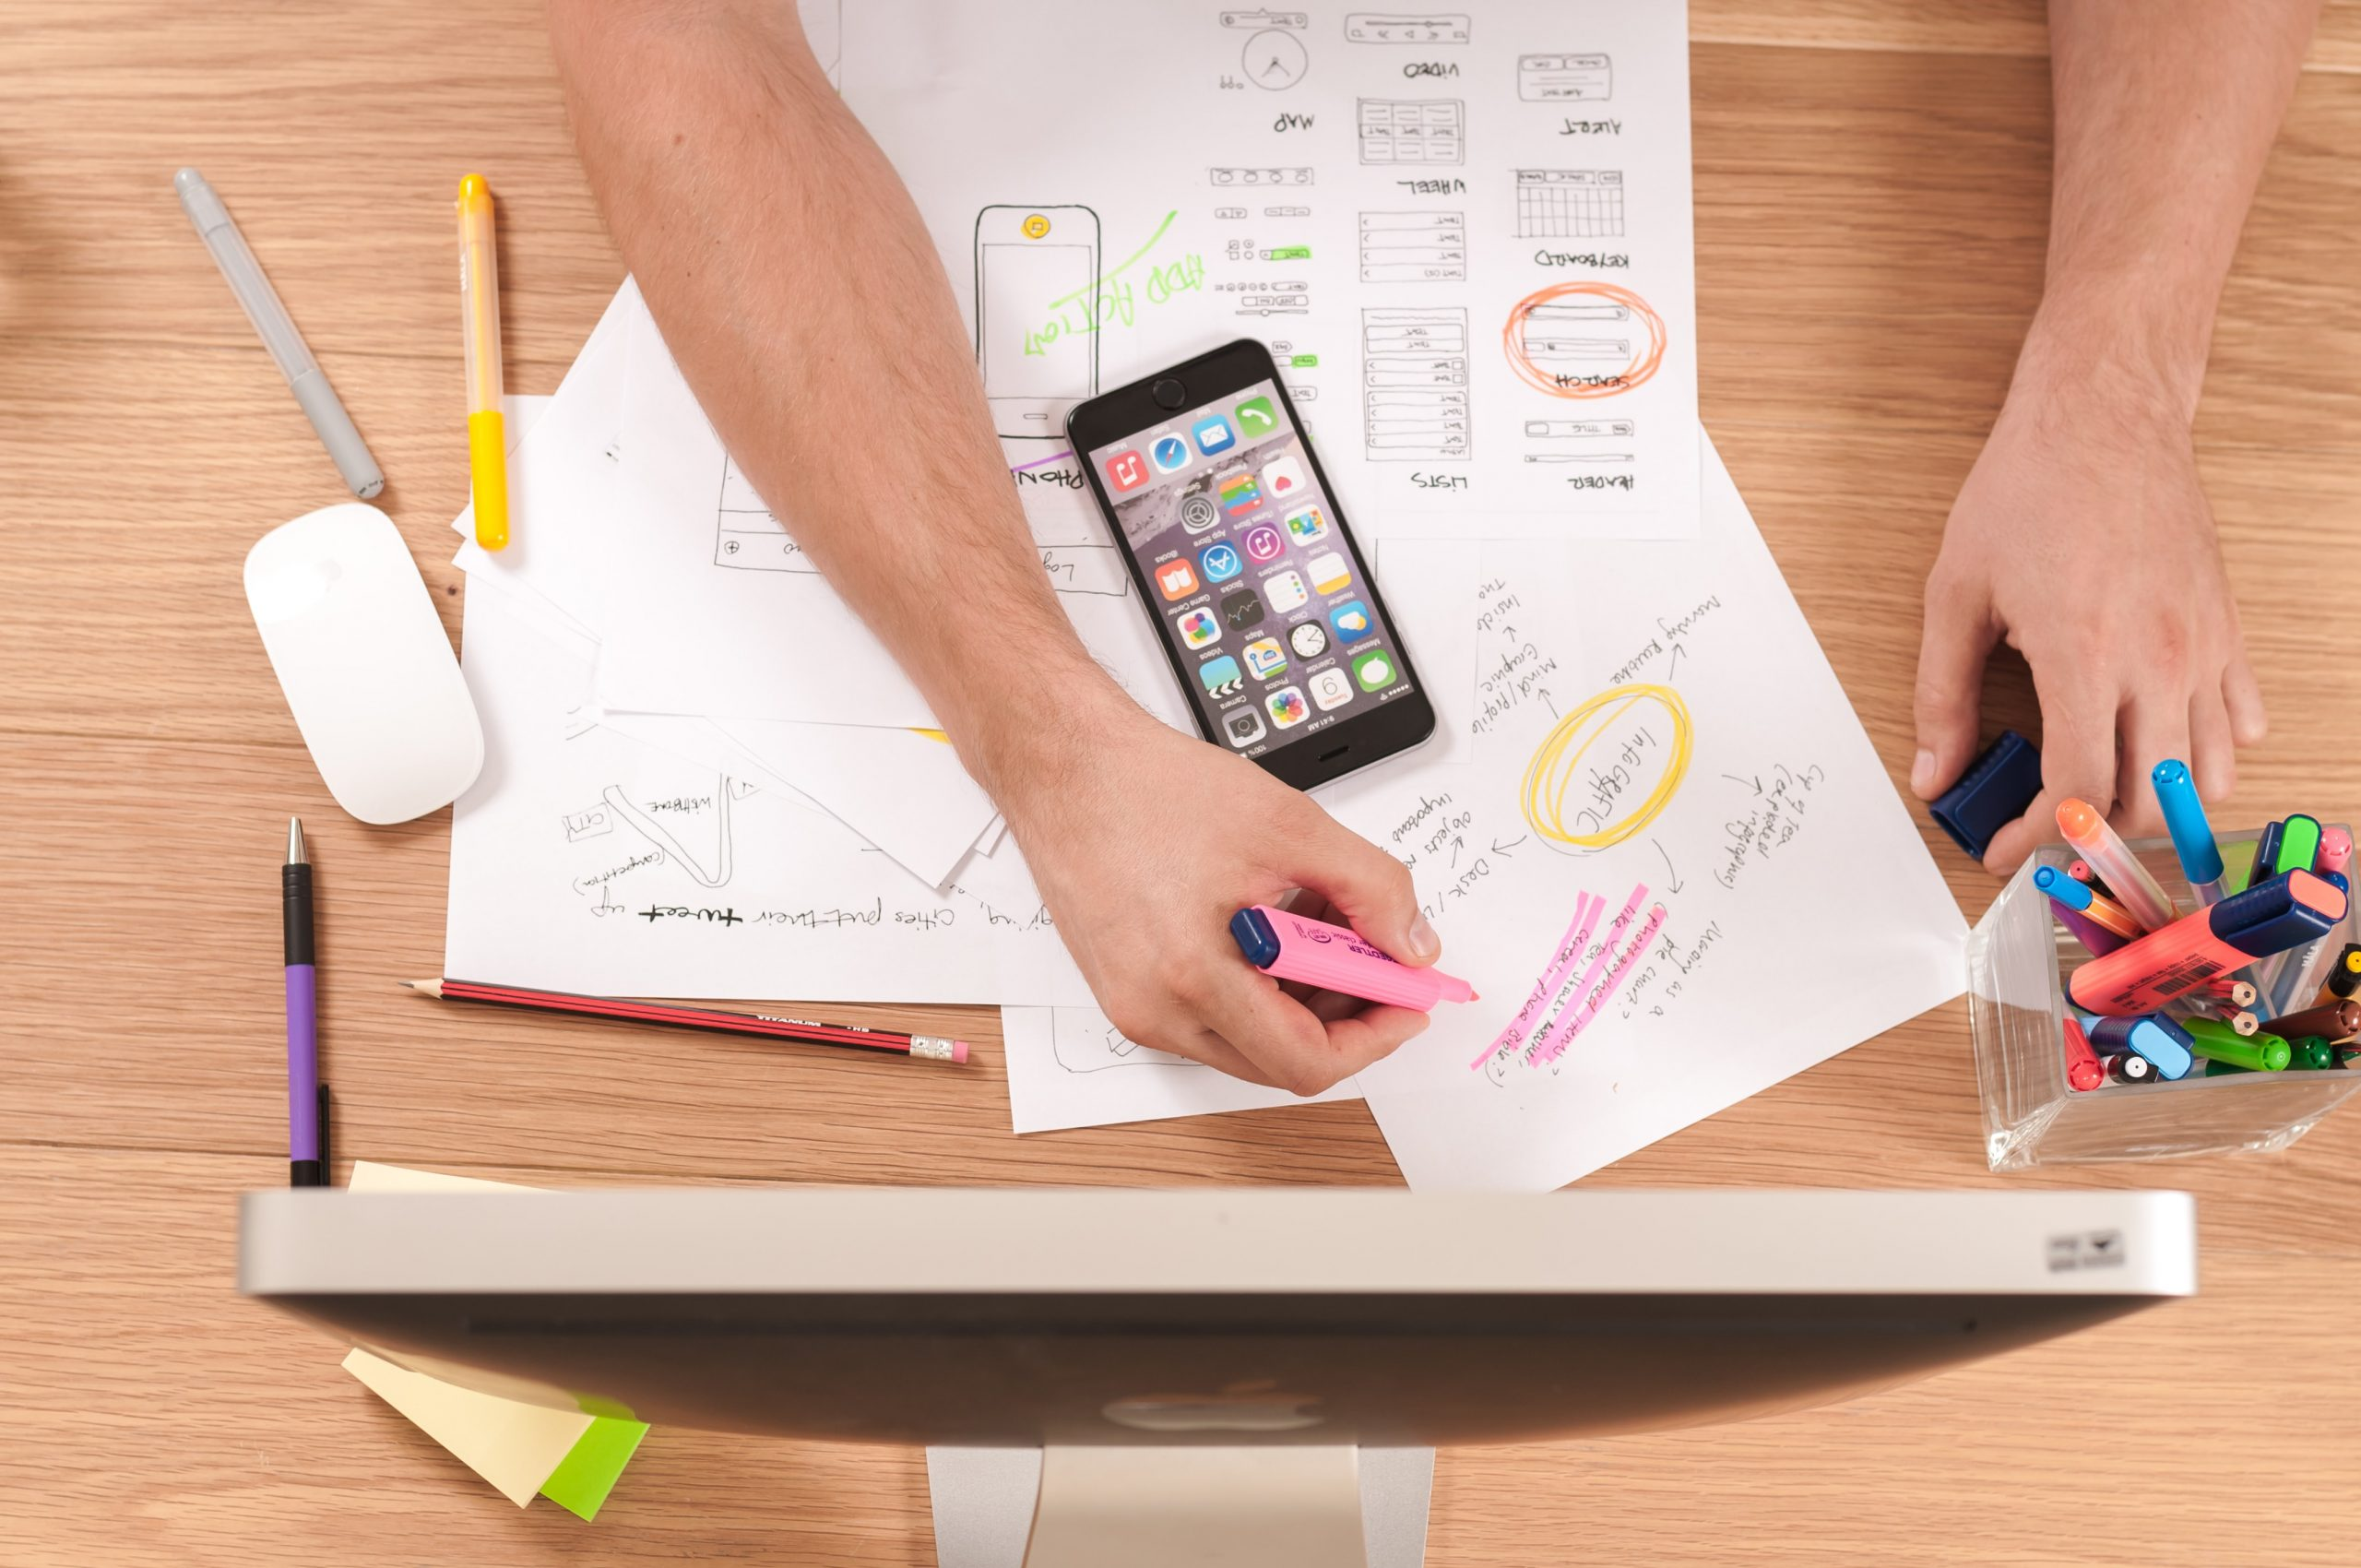 monitor and smartphone with website planning documents